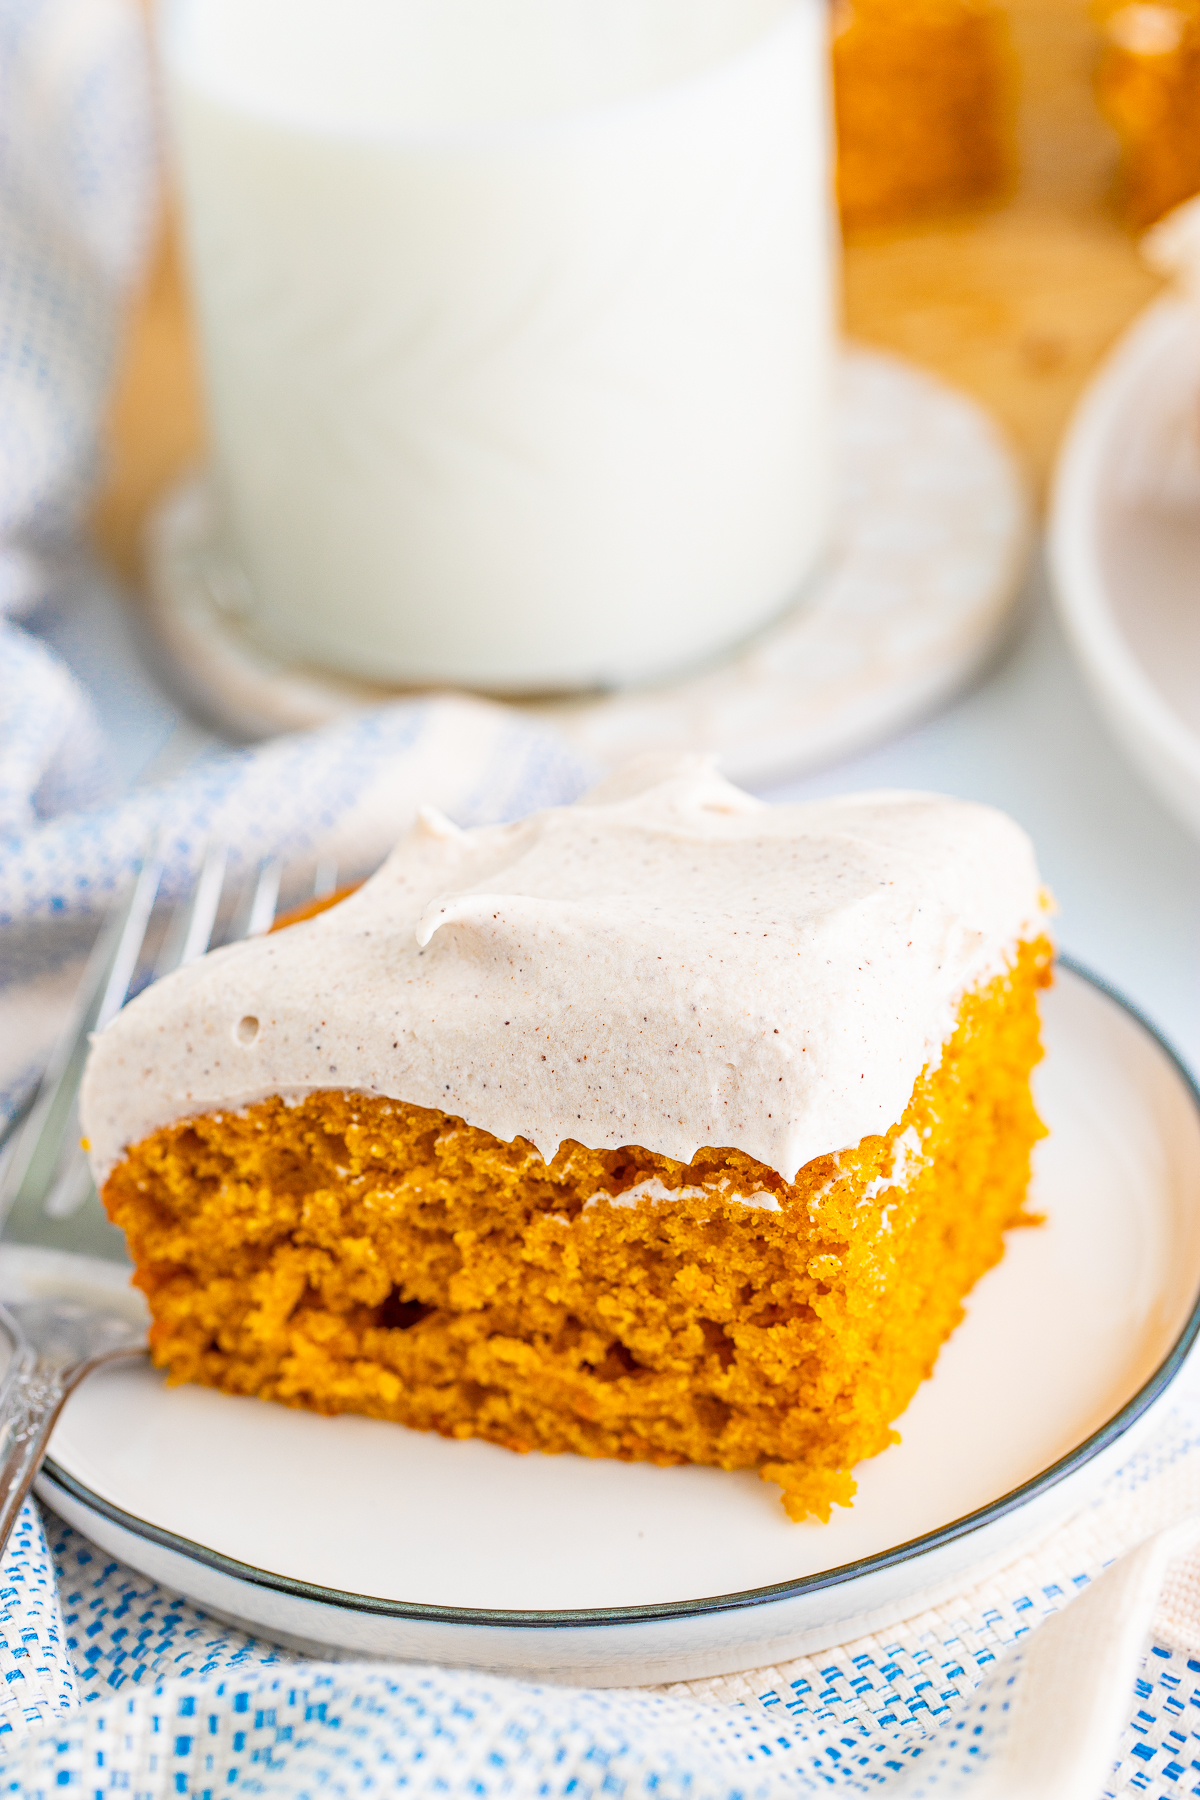 Cut Pumpkin Bar Recipe slice on white plate frosted.